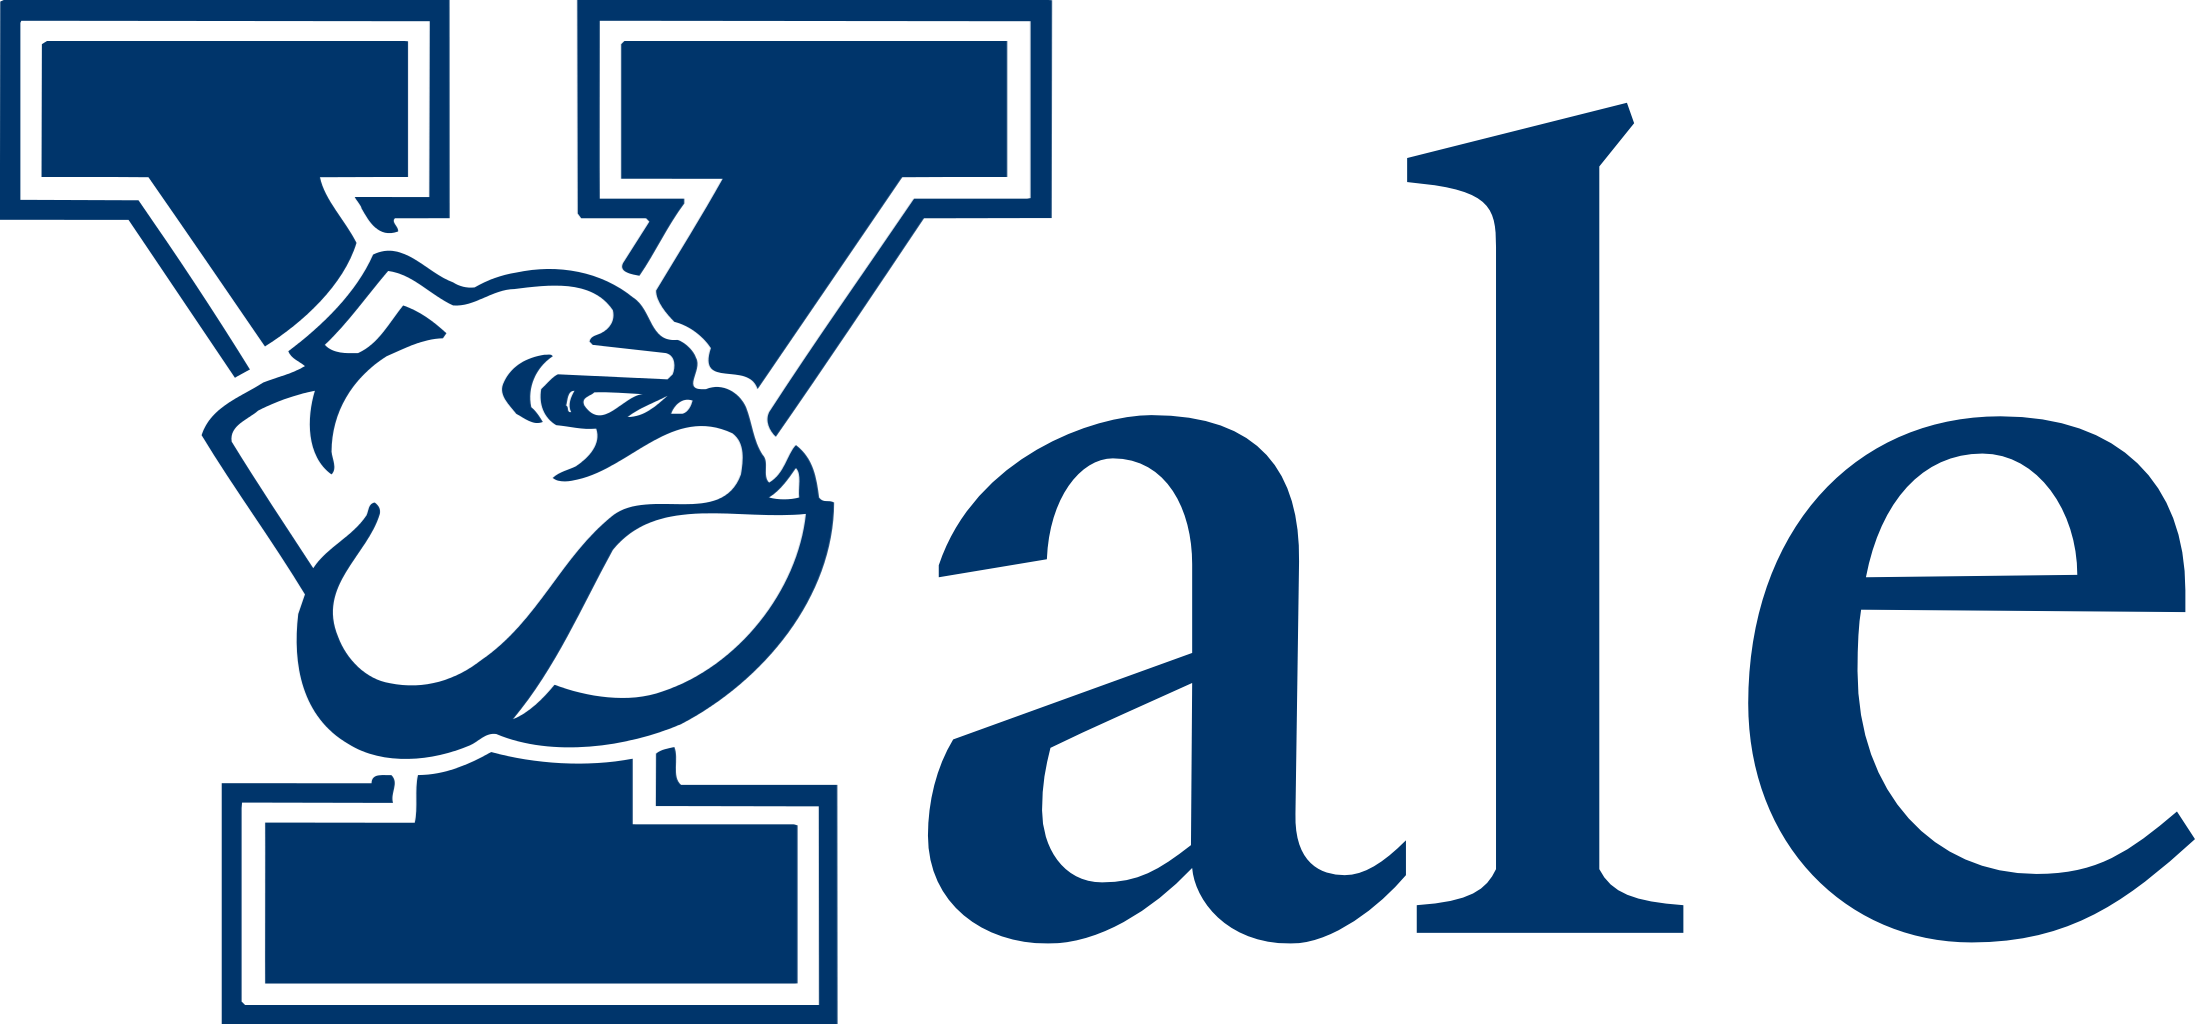 Yale Logo - yale-logo - Foundation For Teaching Economics